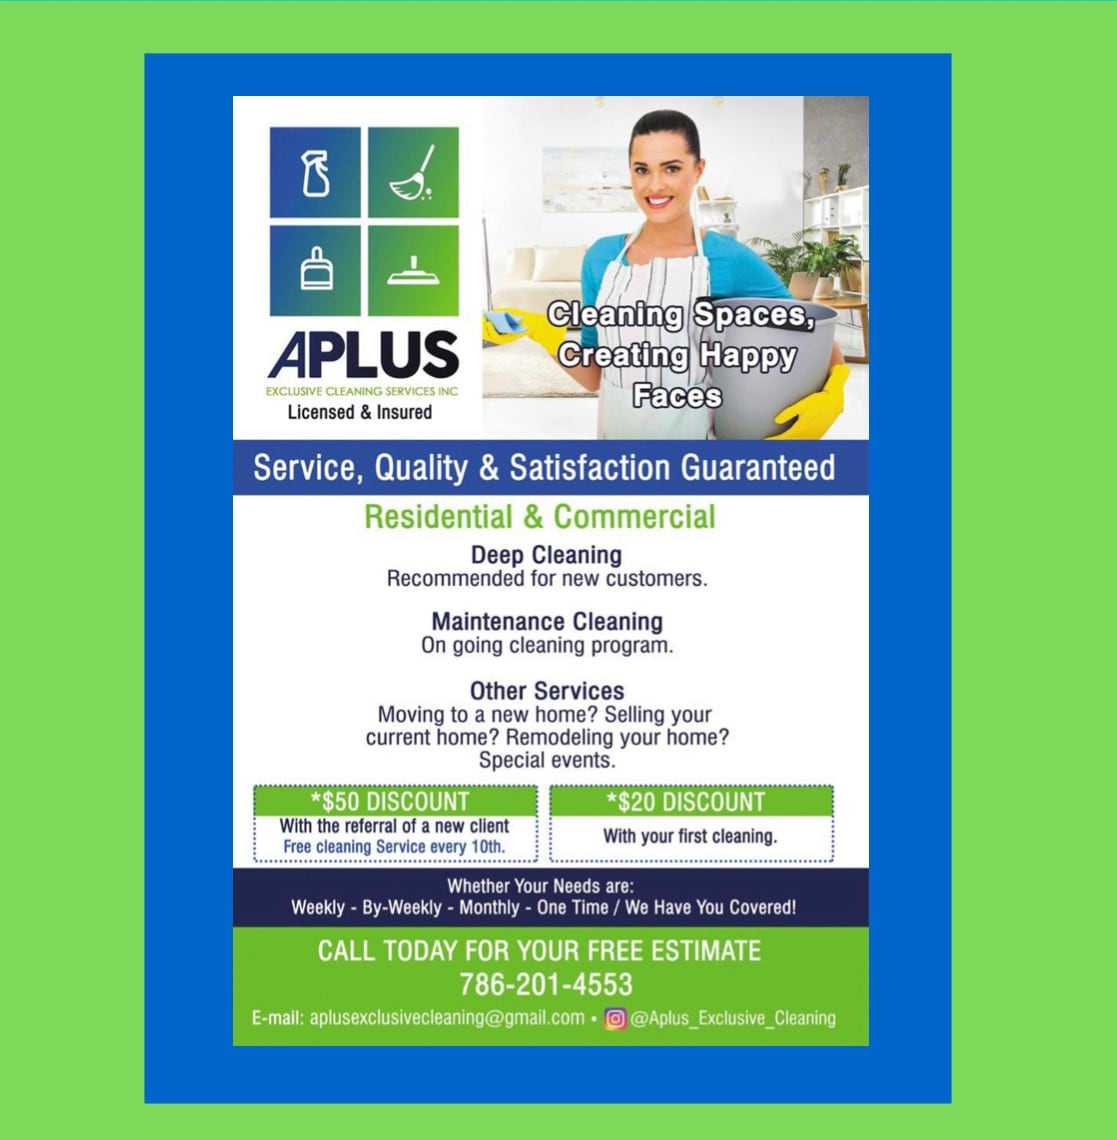 Aplus Exclusive Cleaning Services Inc